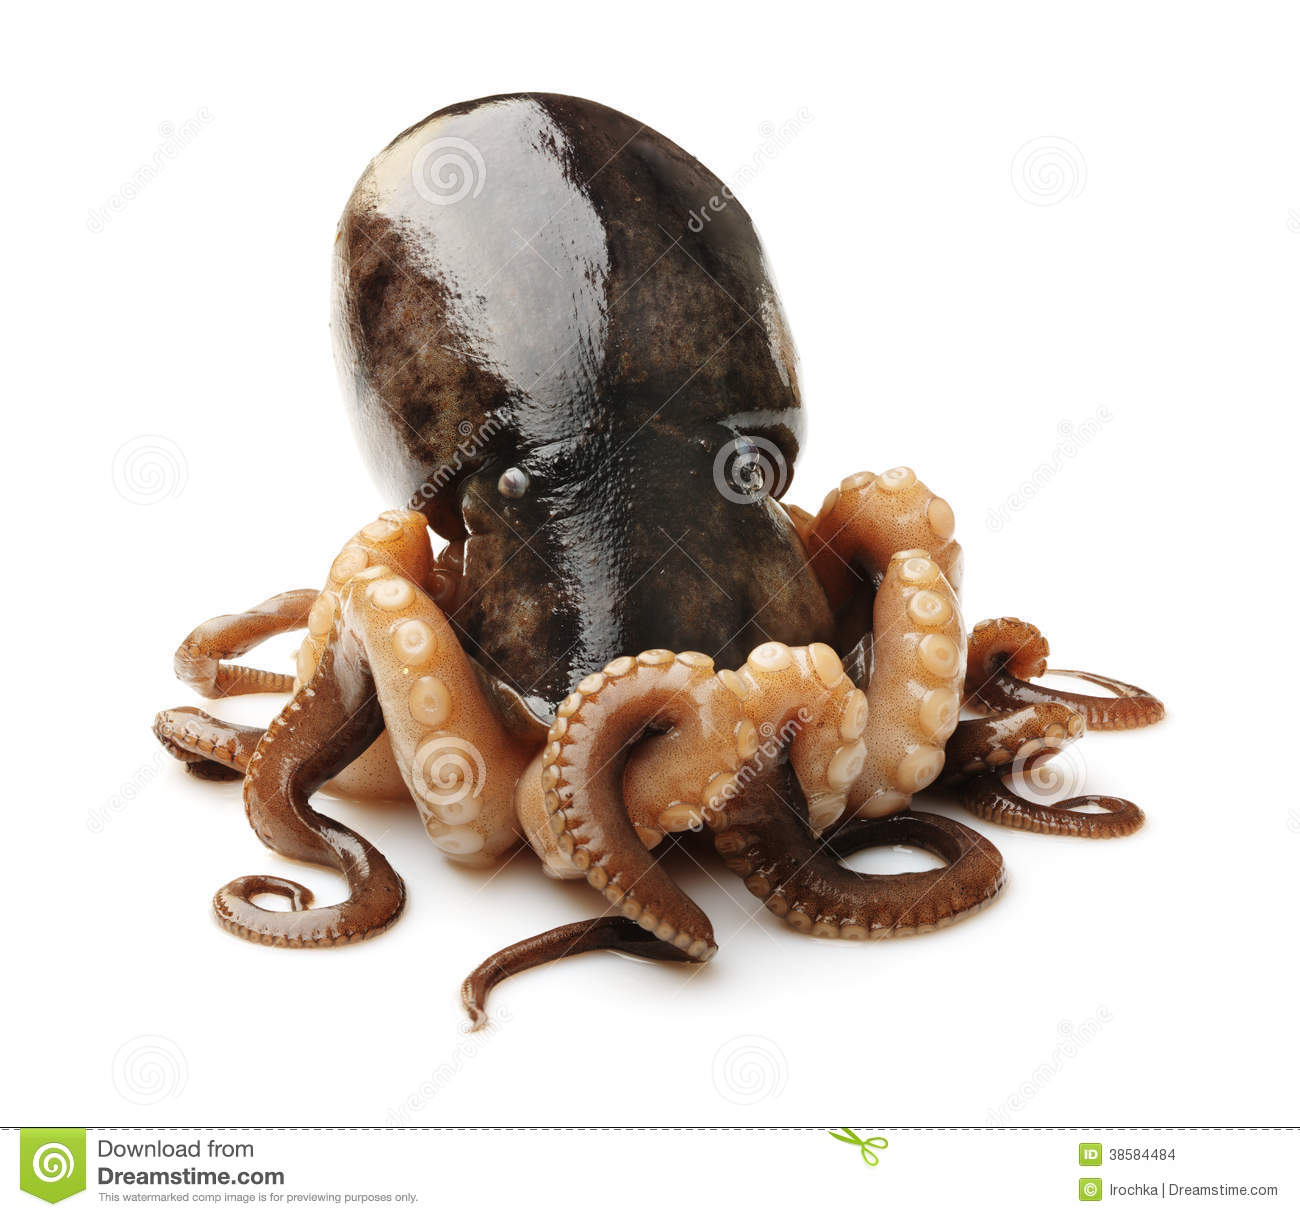 Octopus On White Background Stock Images - Image: 38584484